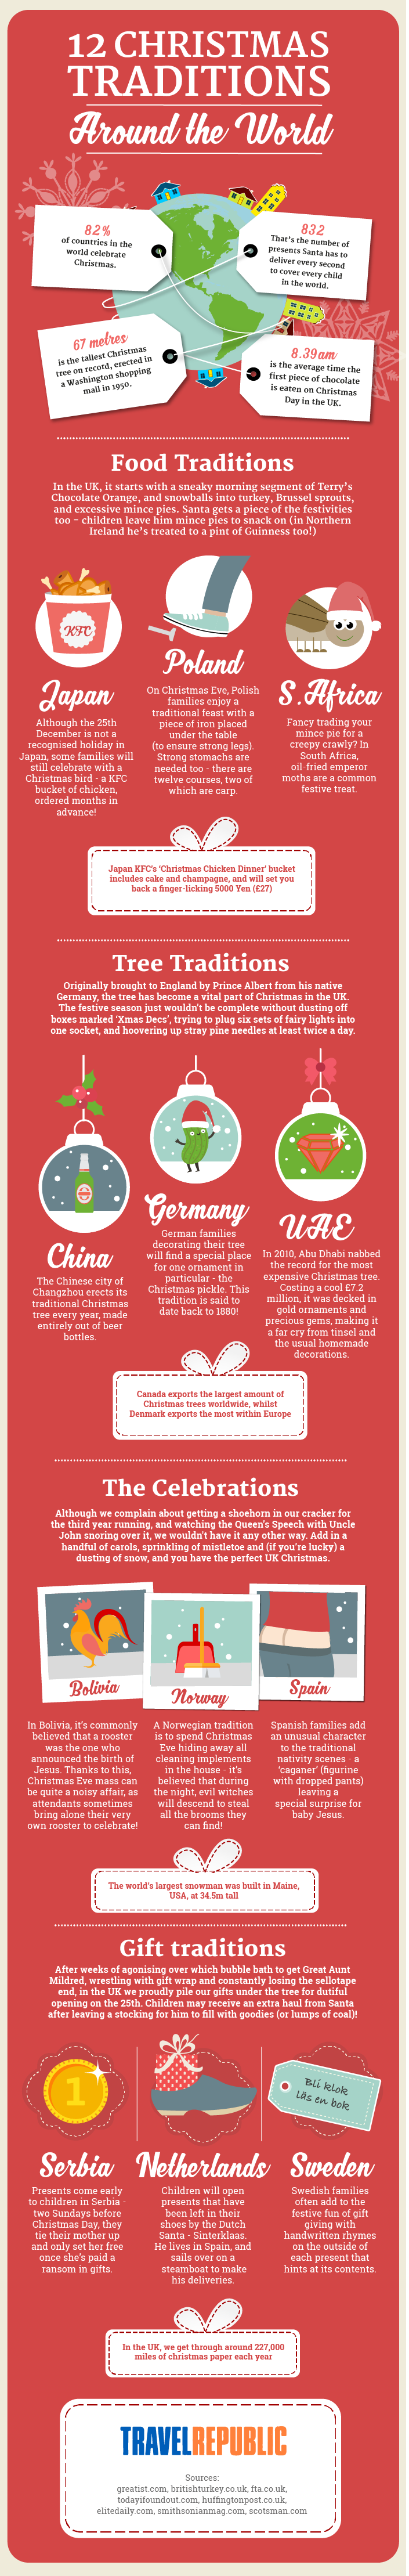 12 Christmas Traditions From Around The World by Travel Republic